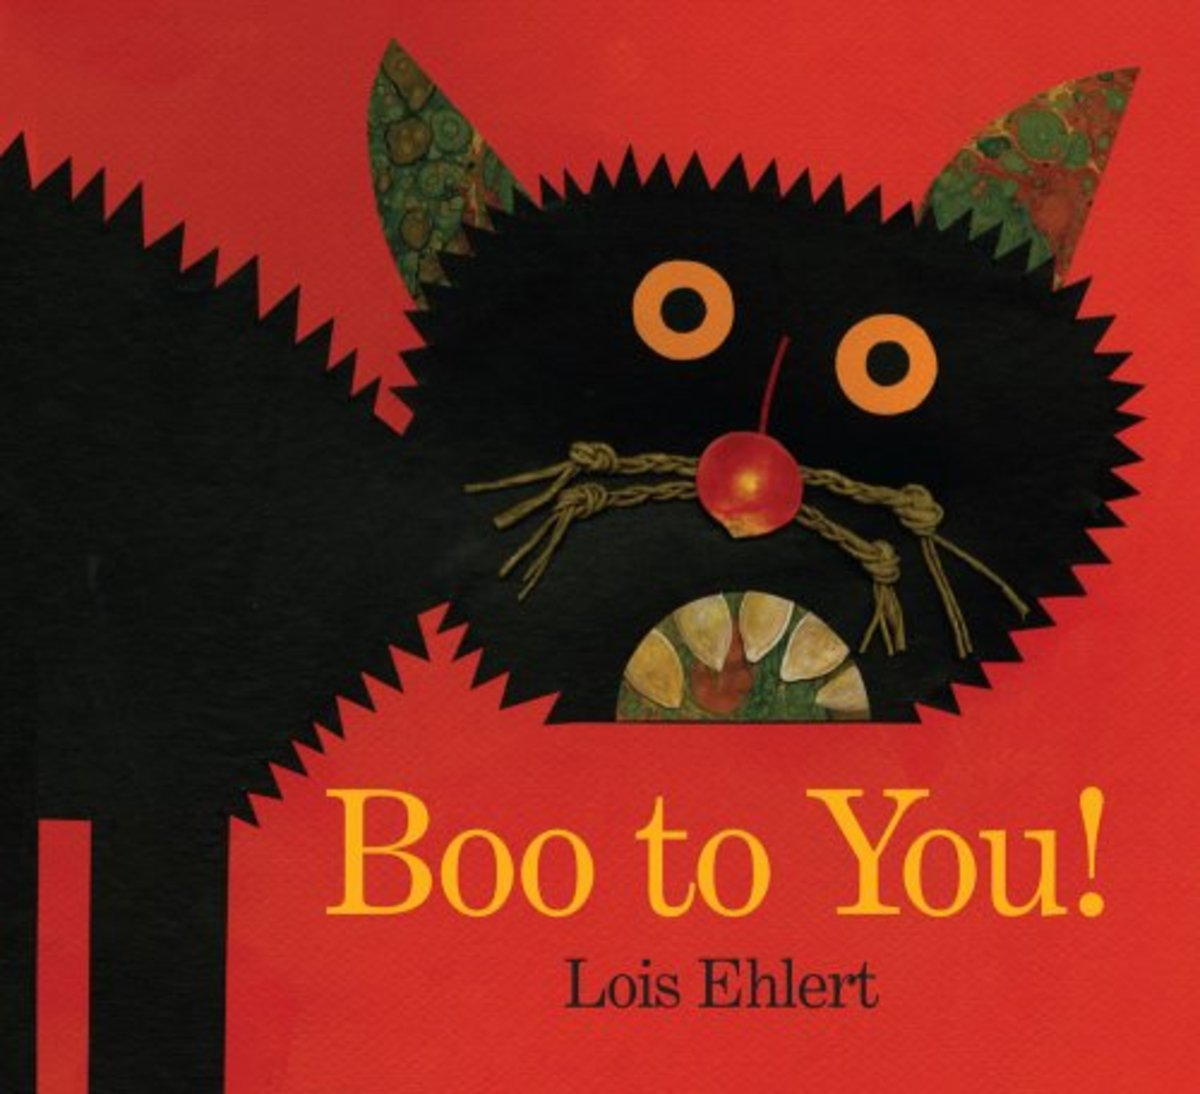 Boo to You! By Lois Ehlert